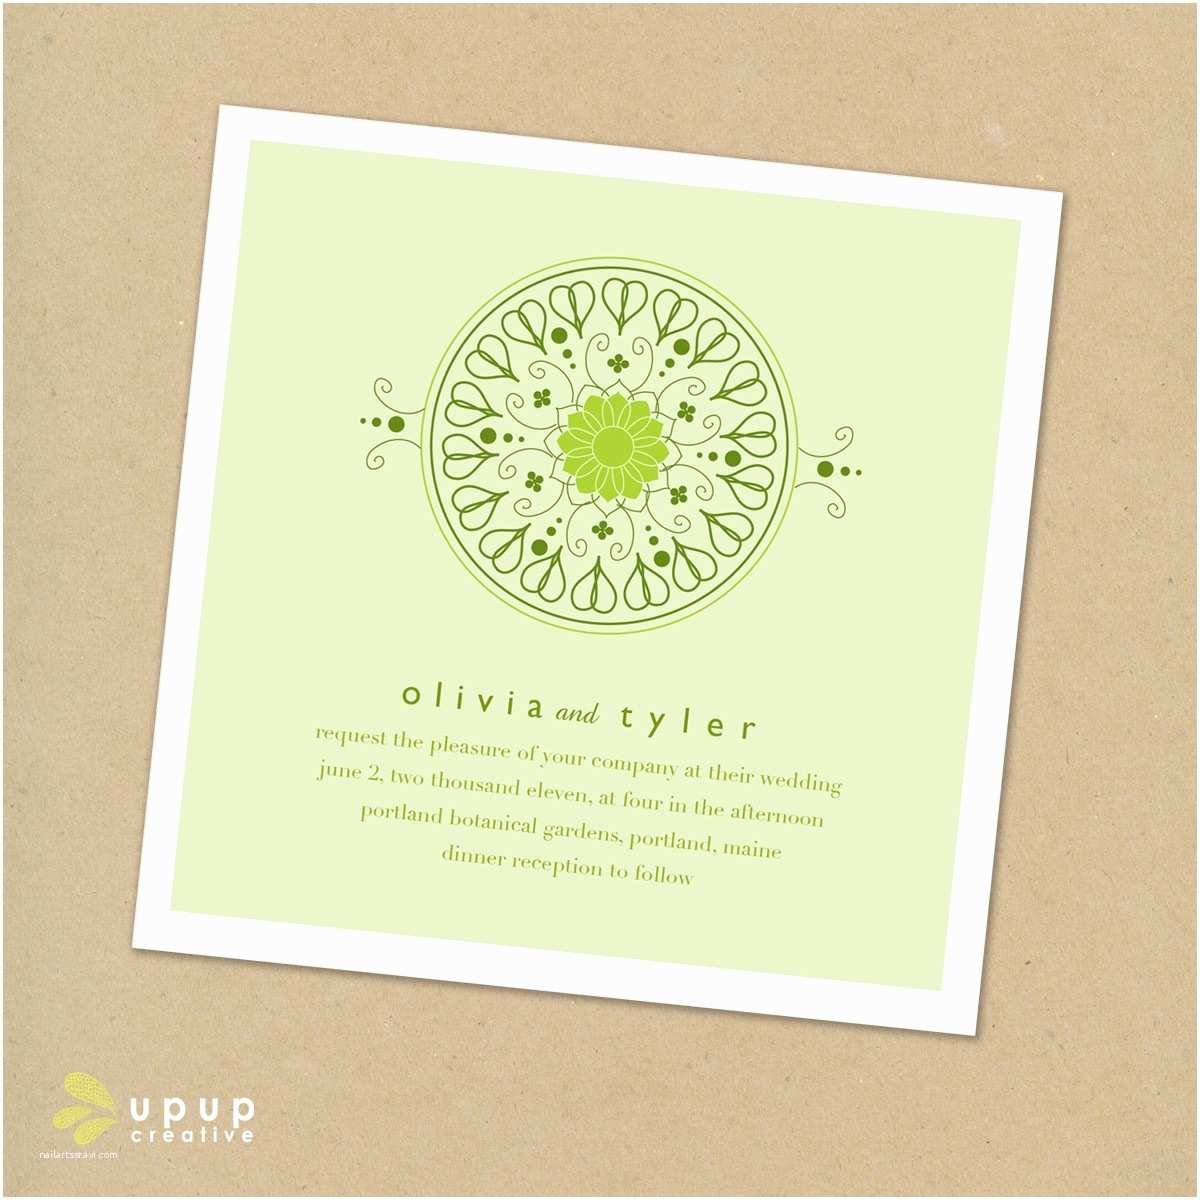 Eco Friendly Wedding Invitations Eco Friendly Square Wedding Invitation Set with Green and